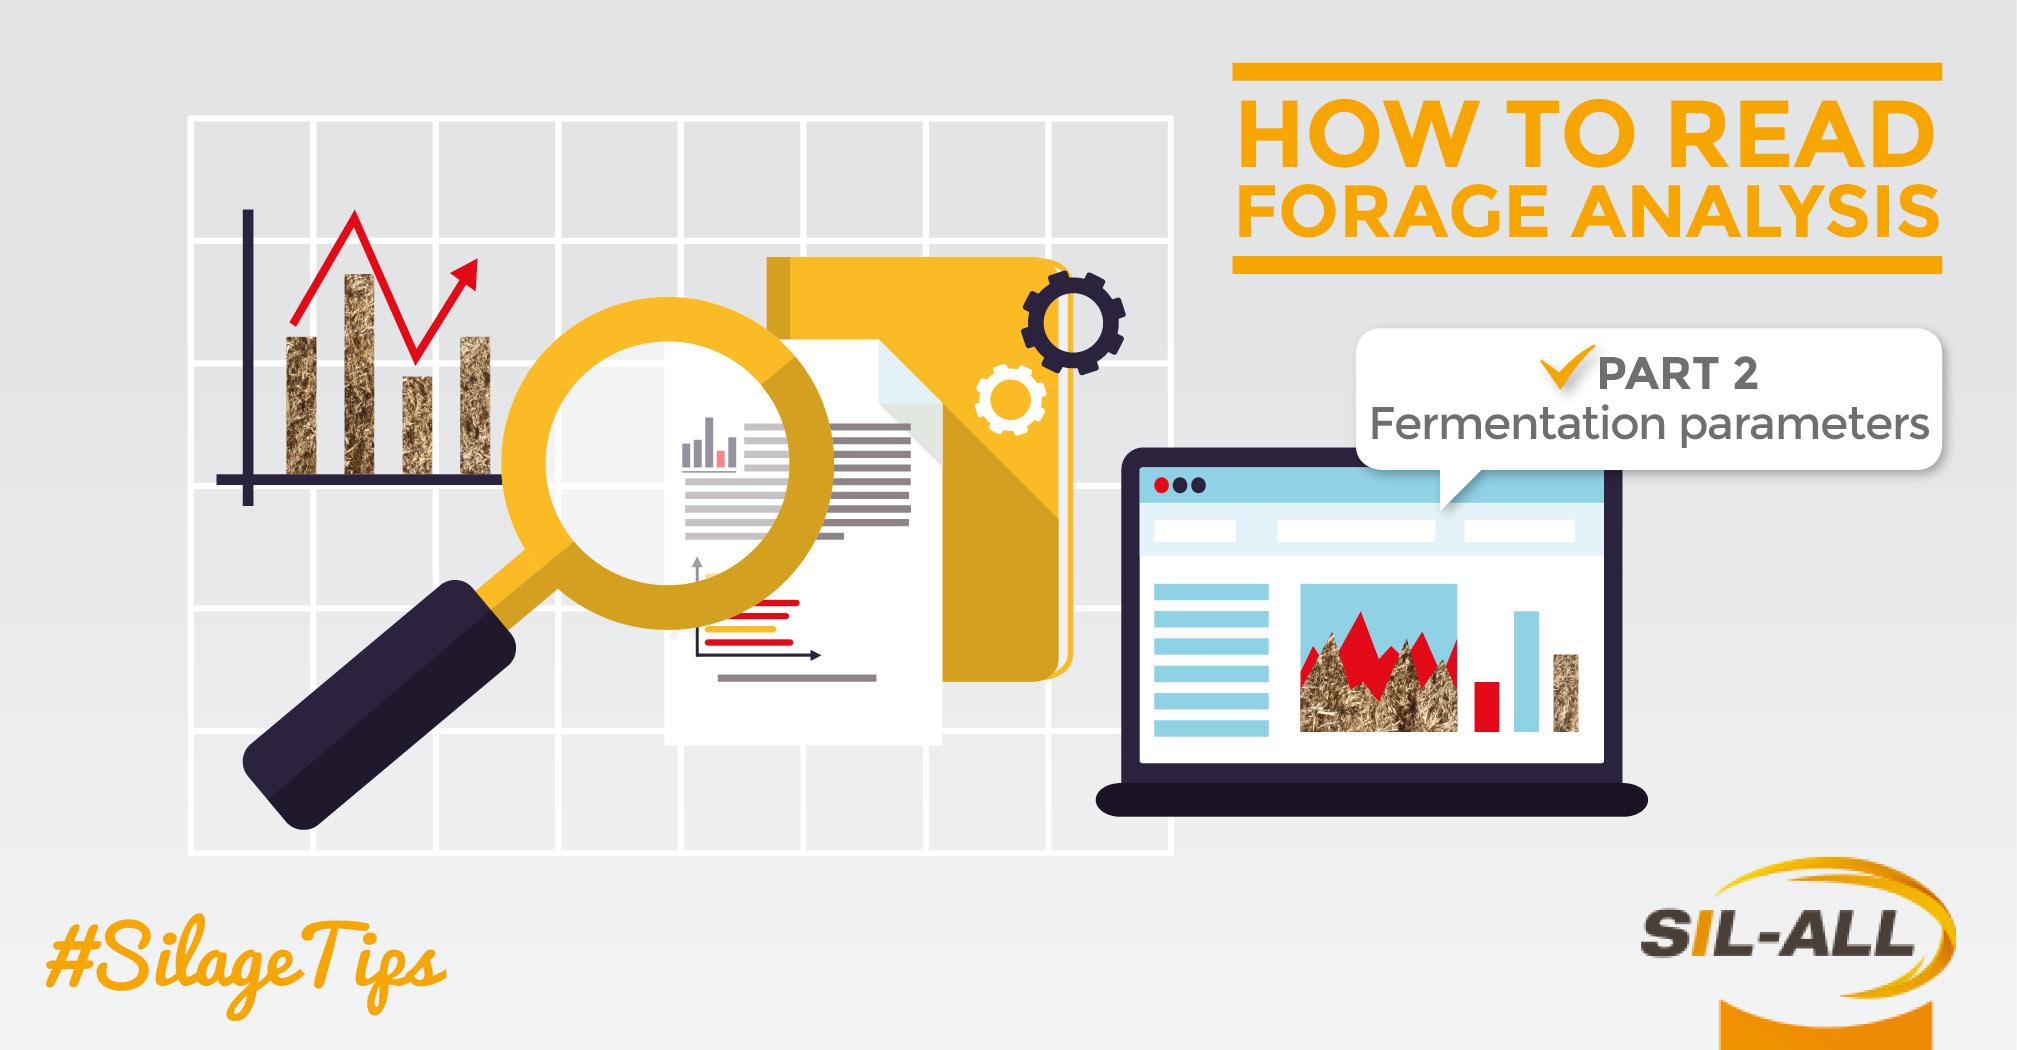 How to read a forage analysis / PART 2: Fermentation parameters